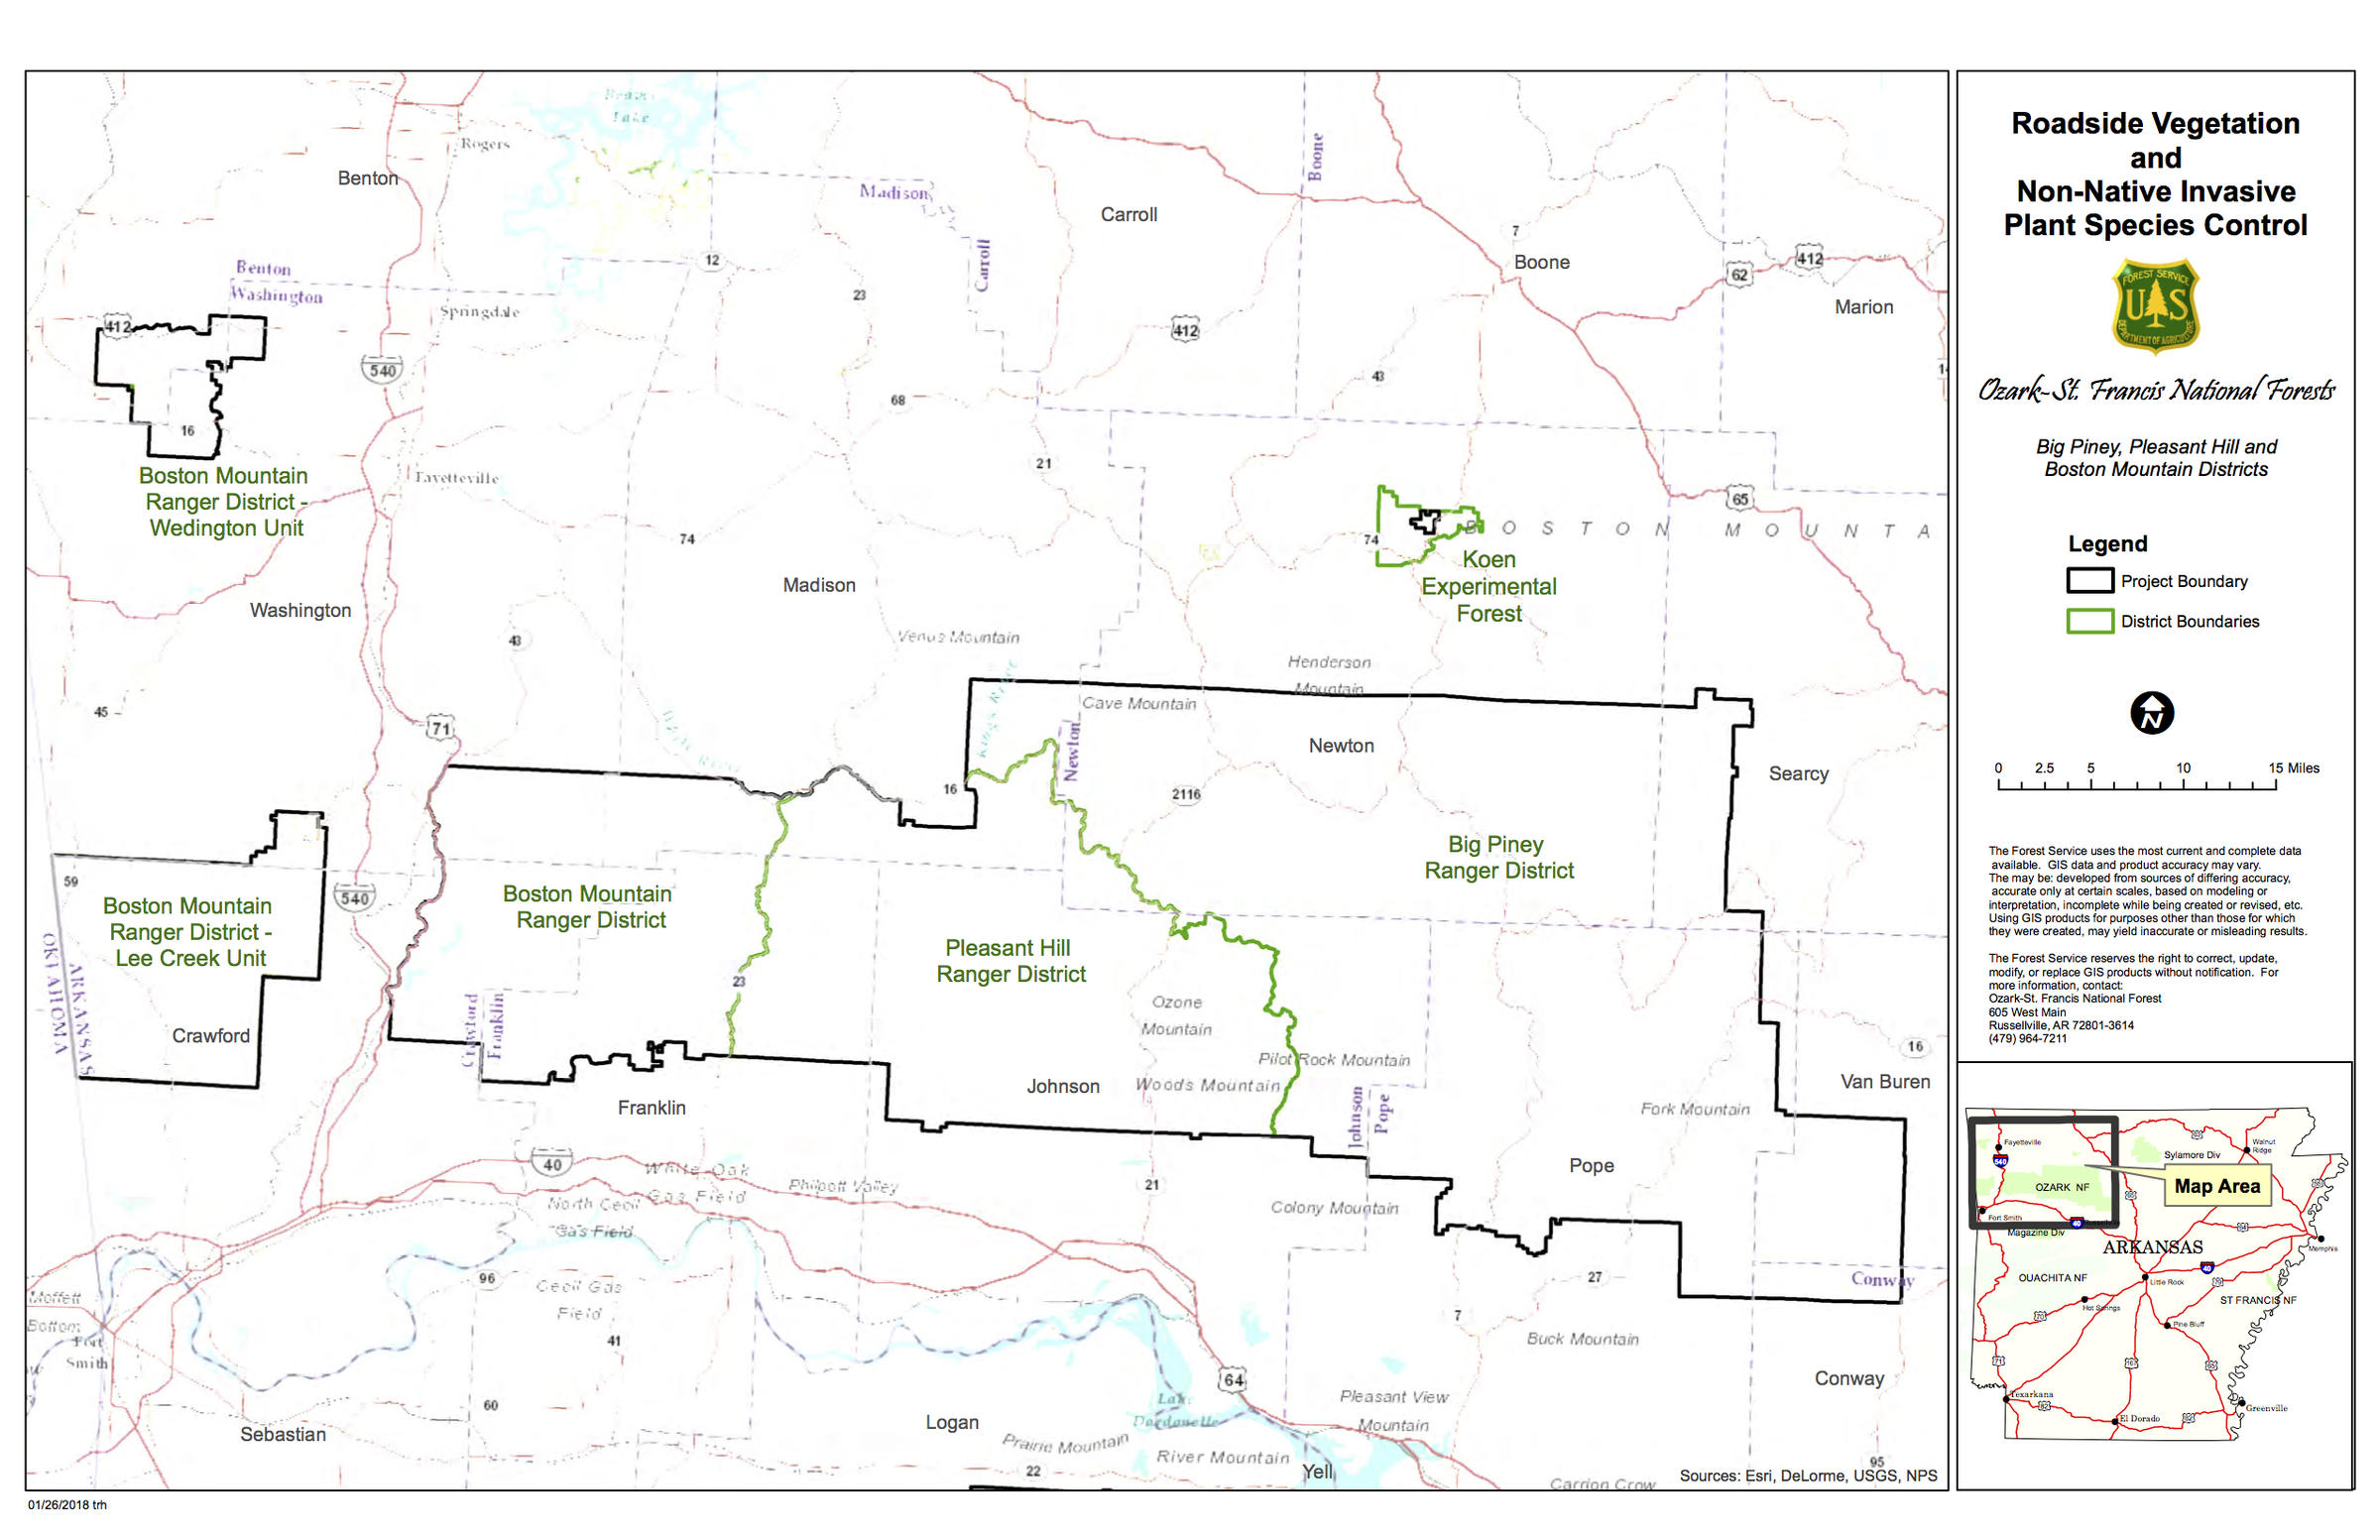 Ozark-St. Francis National Forest Proposes Ambitious Roadside ...